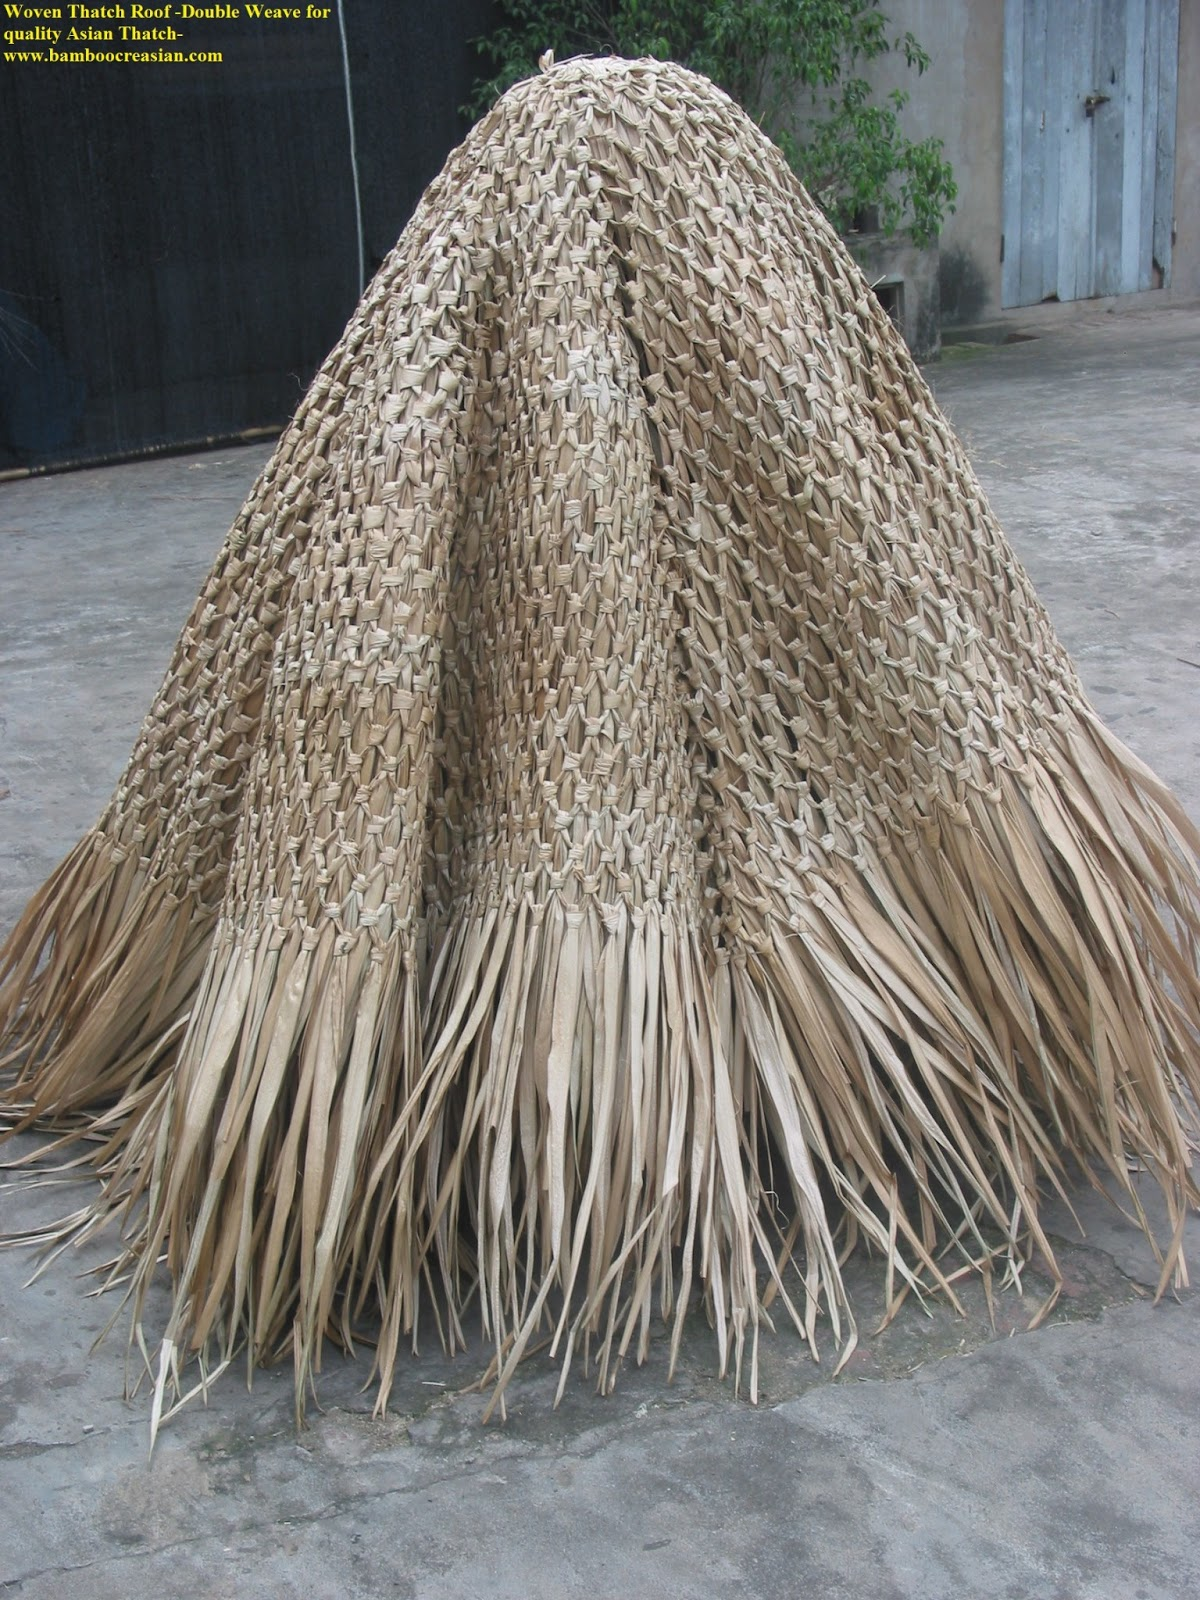 20 Ft(diameter Palapas Tiki Hutu0027s Roof) OfThatchu0027s Cover 2 Ft X 30ft Palm  Palapas U0026Tiki Hut   Thatching Roll 2.1/2 Ftx 30ft Grade A Palapas U0026 Hut U0027s  Roof ...